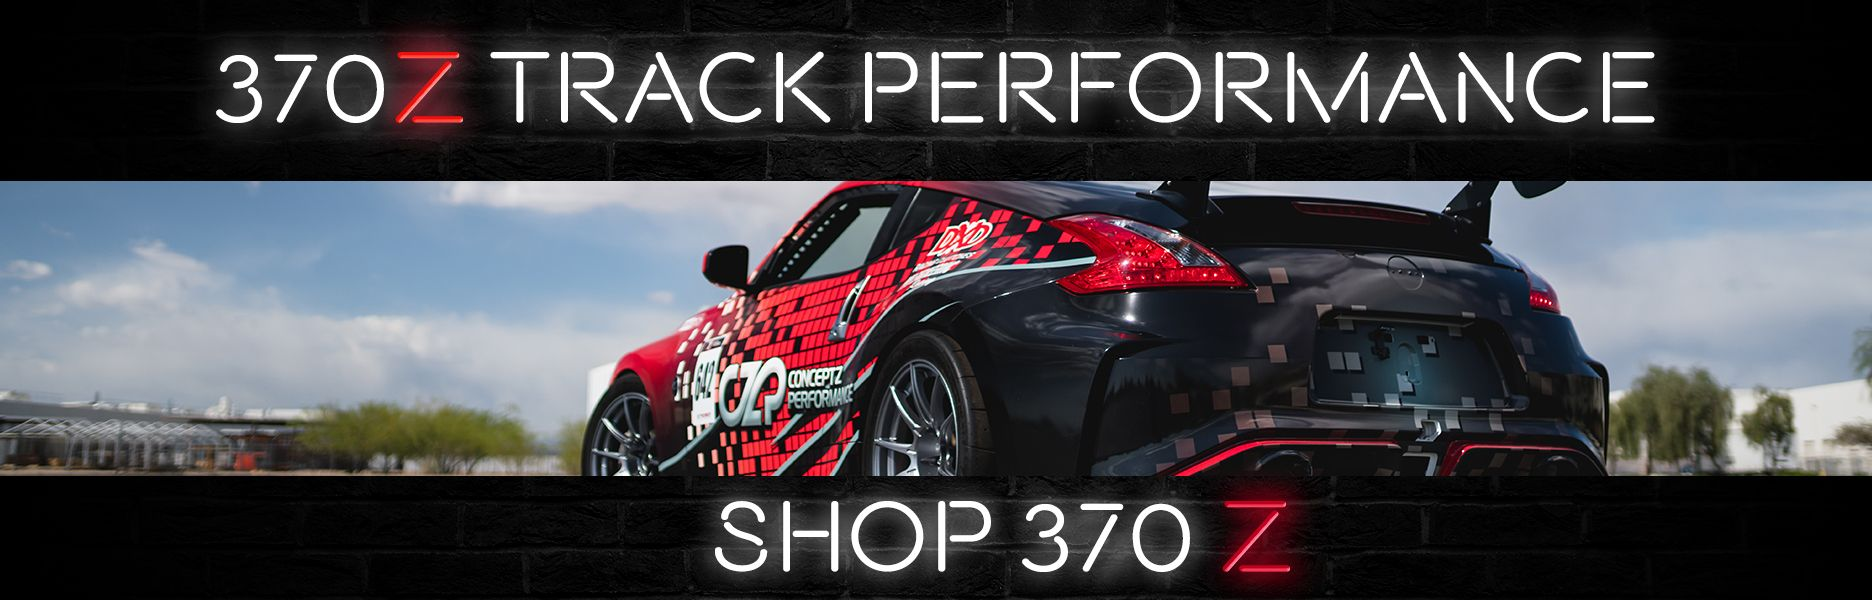 Black friday 370Z